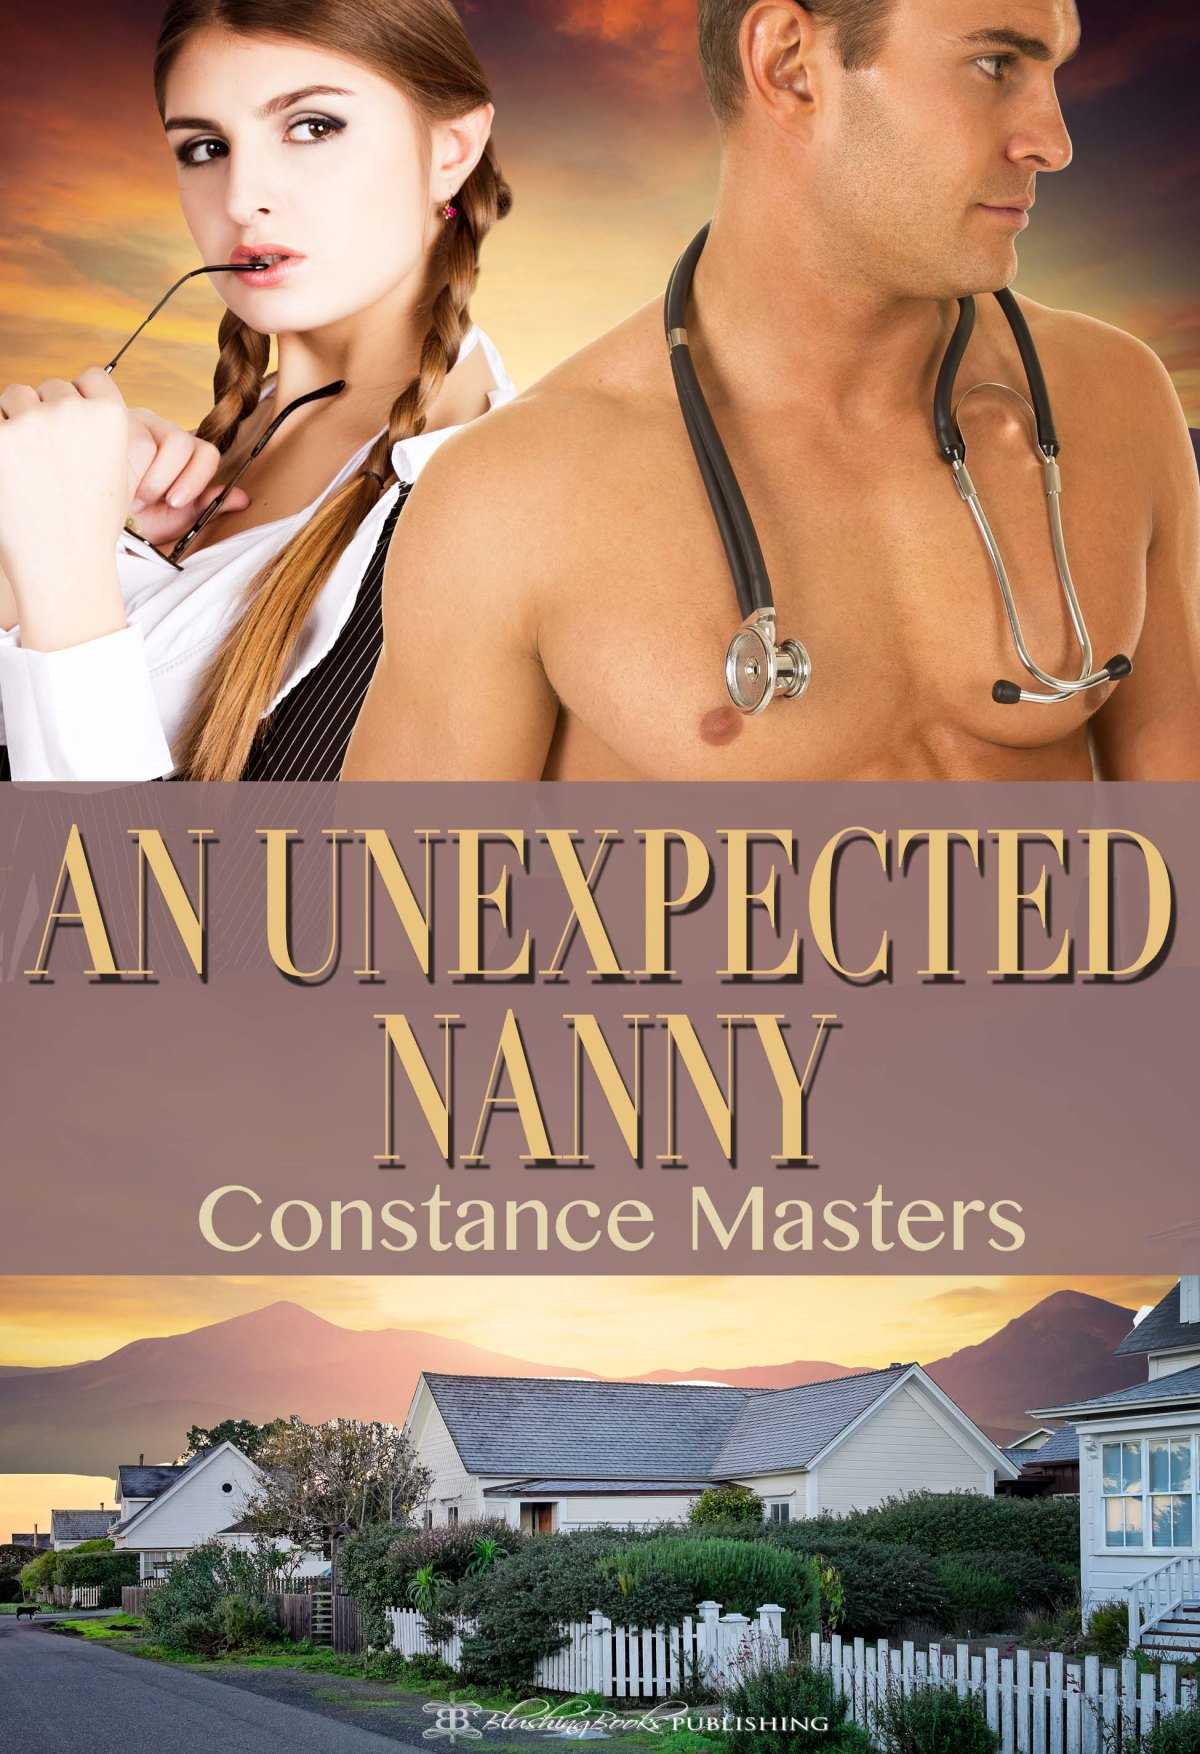 An Unexpected Nanny by Constance Masters